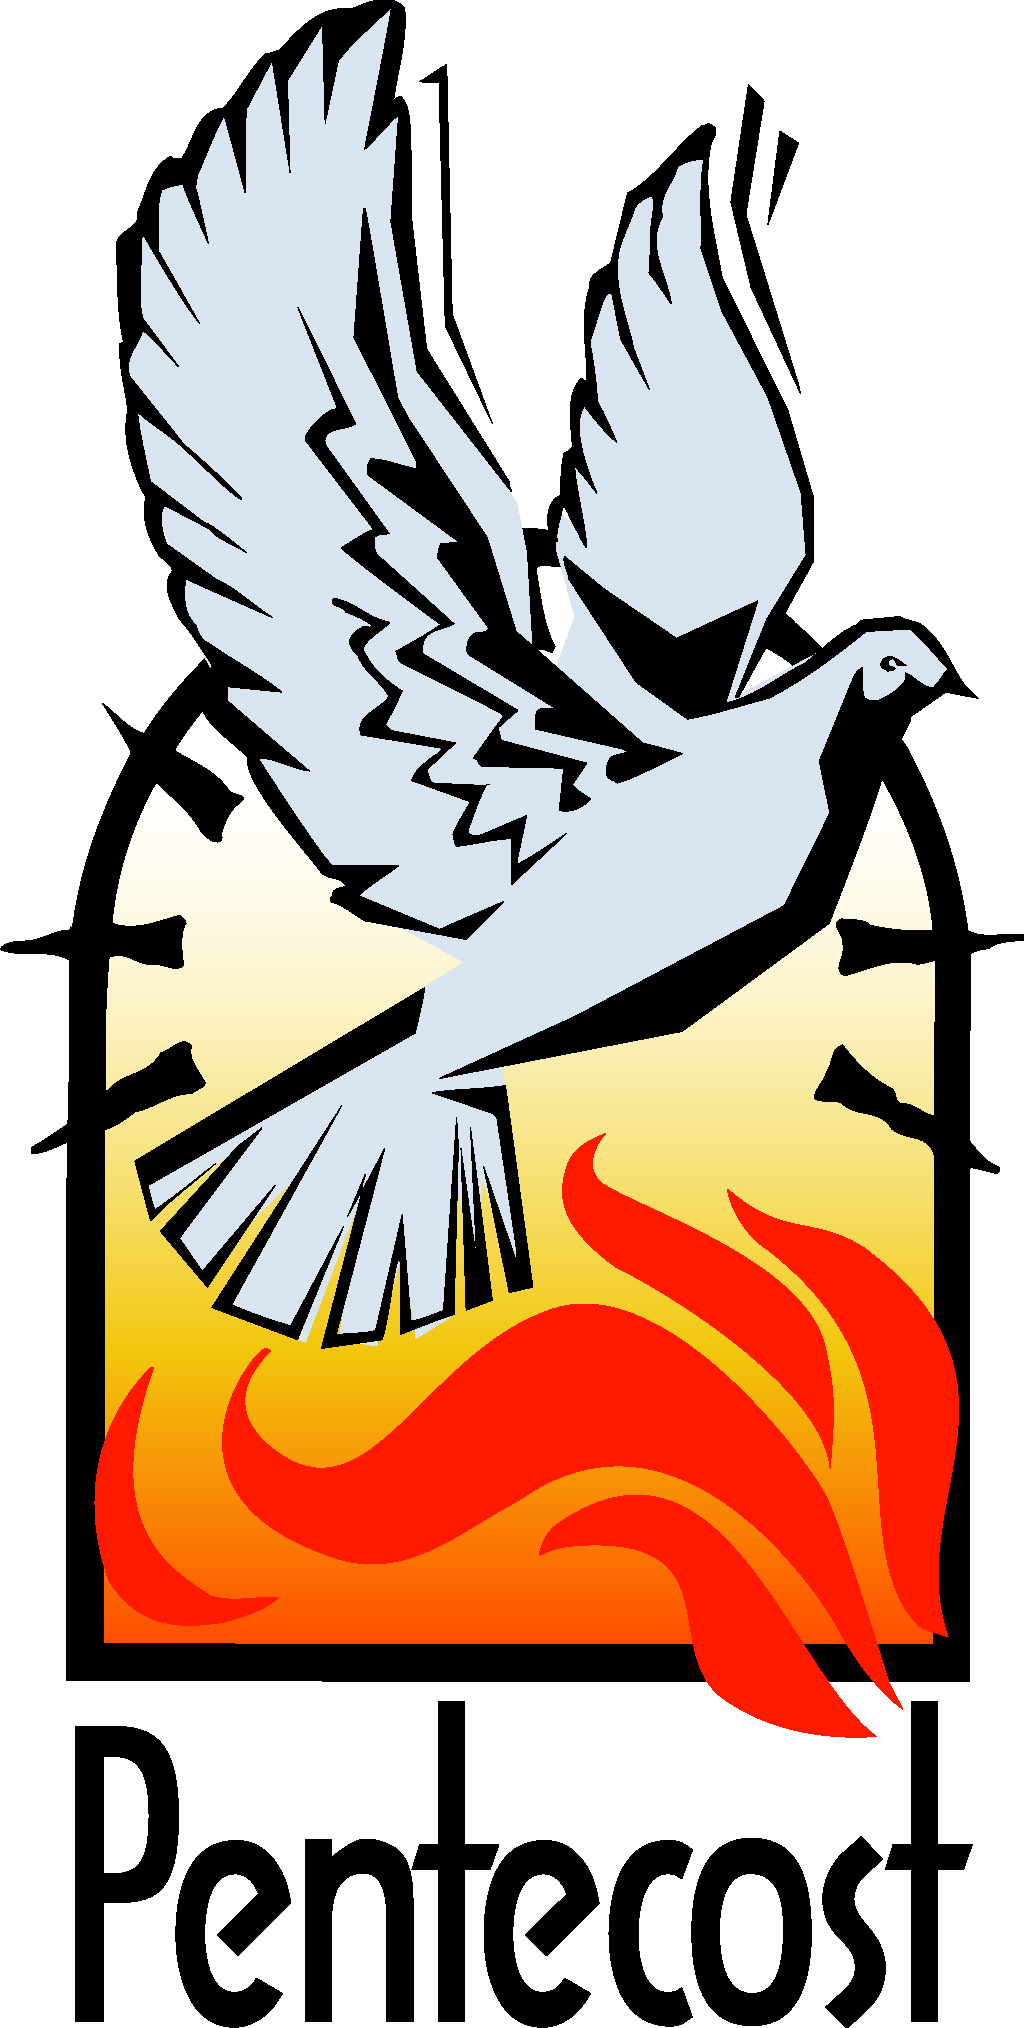 Free Pentecost Cliparts, Download Free Clip Art, Free Clip Art on.